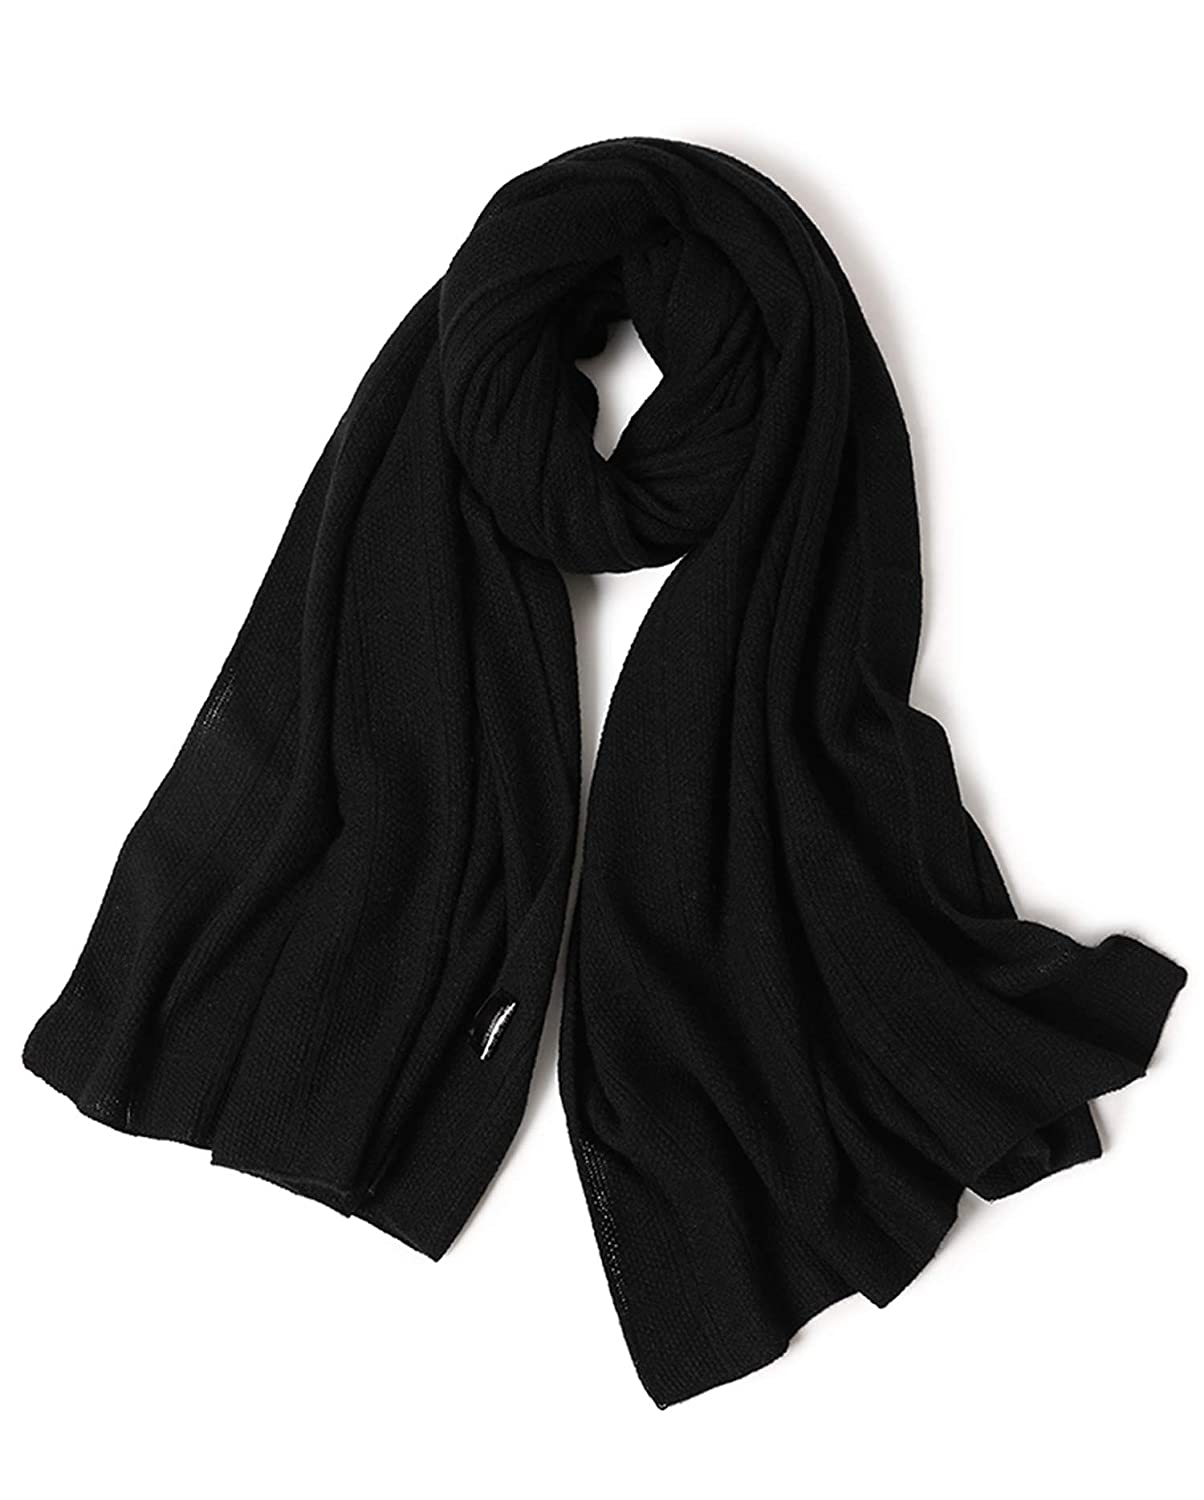 Blackplaid Ellettee, 100% Cashmere Knitted Scarf Premium Shawl Luxurious Elegant Solid color Wrap Art Oversized Shawl, Oblong